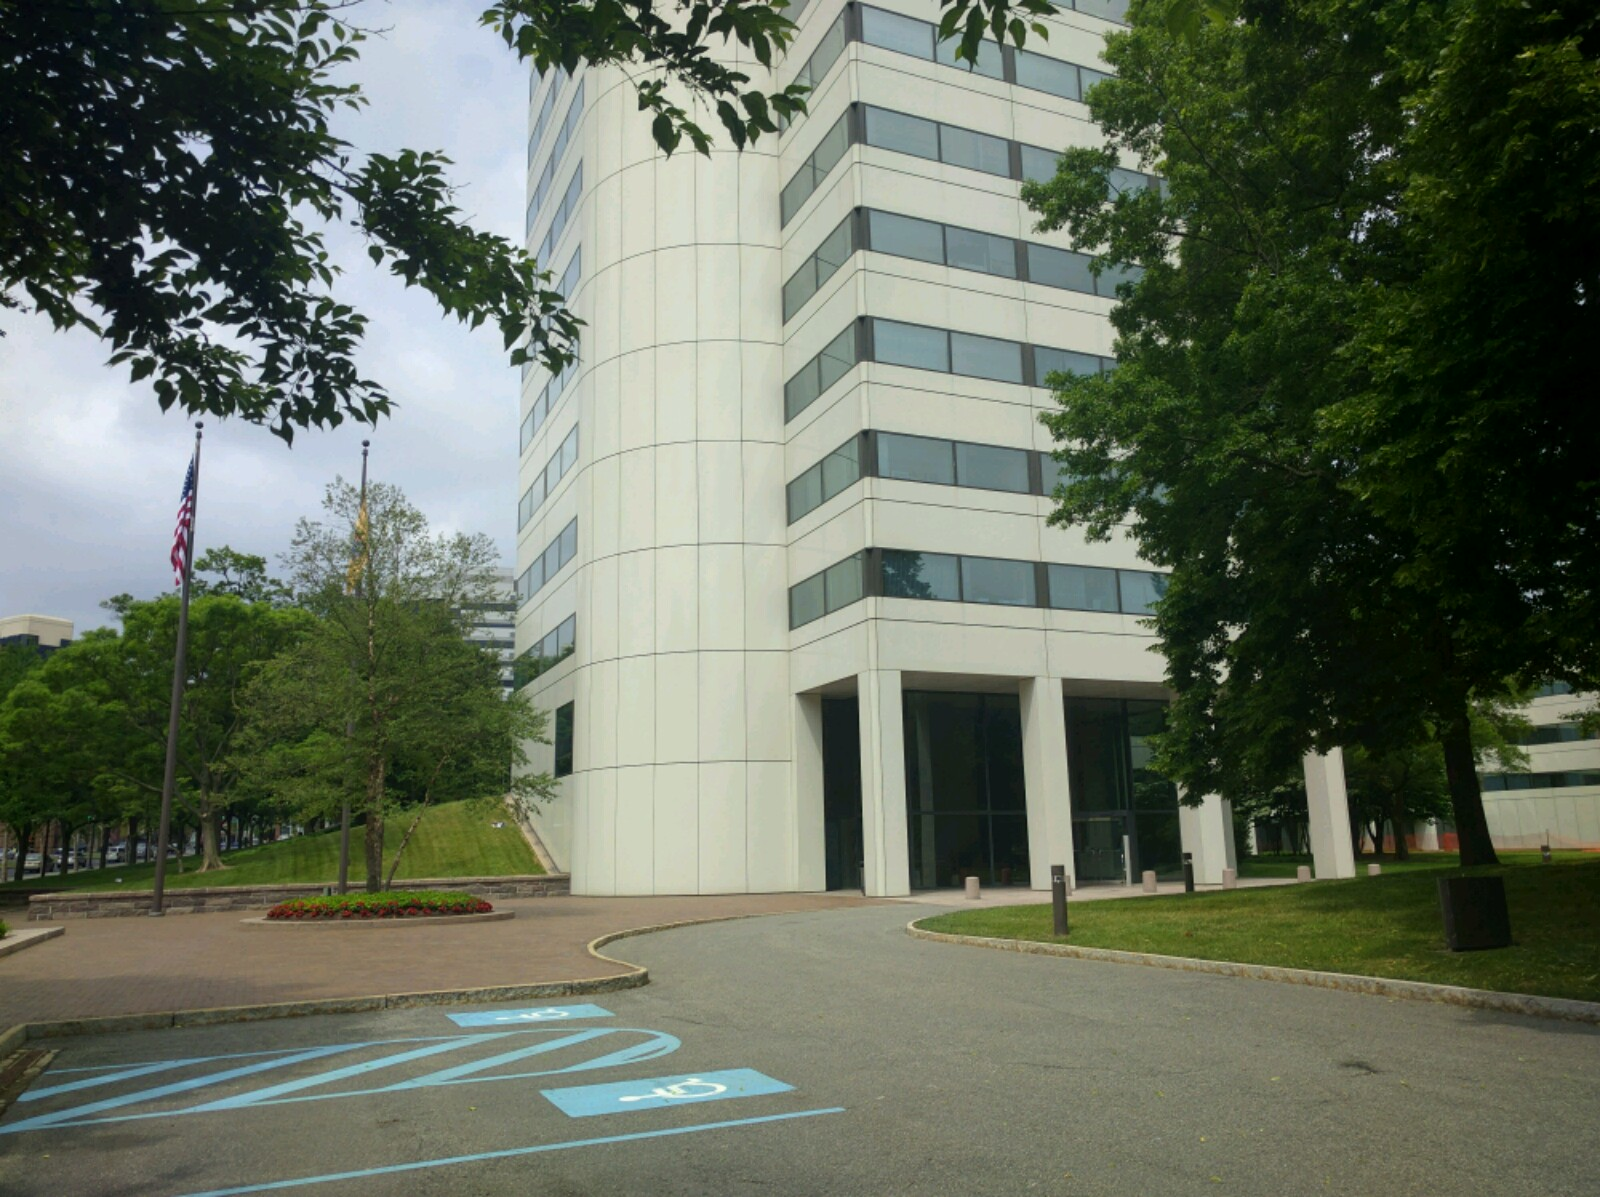 Johnson & Johnson's corporate headquarters in New Brunswick, New Jersey.